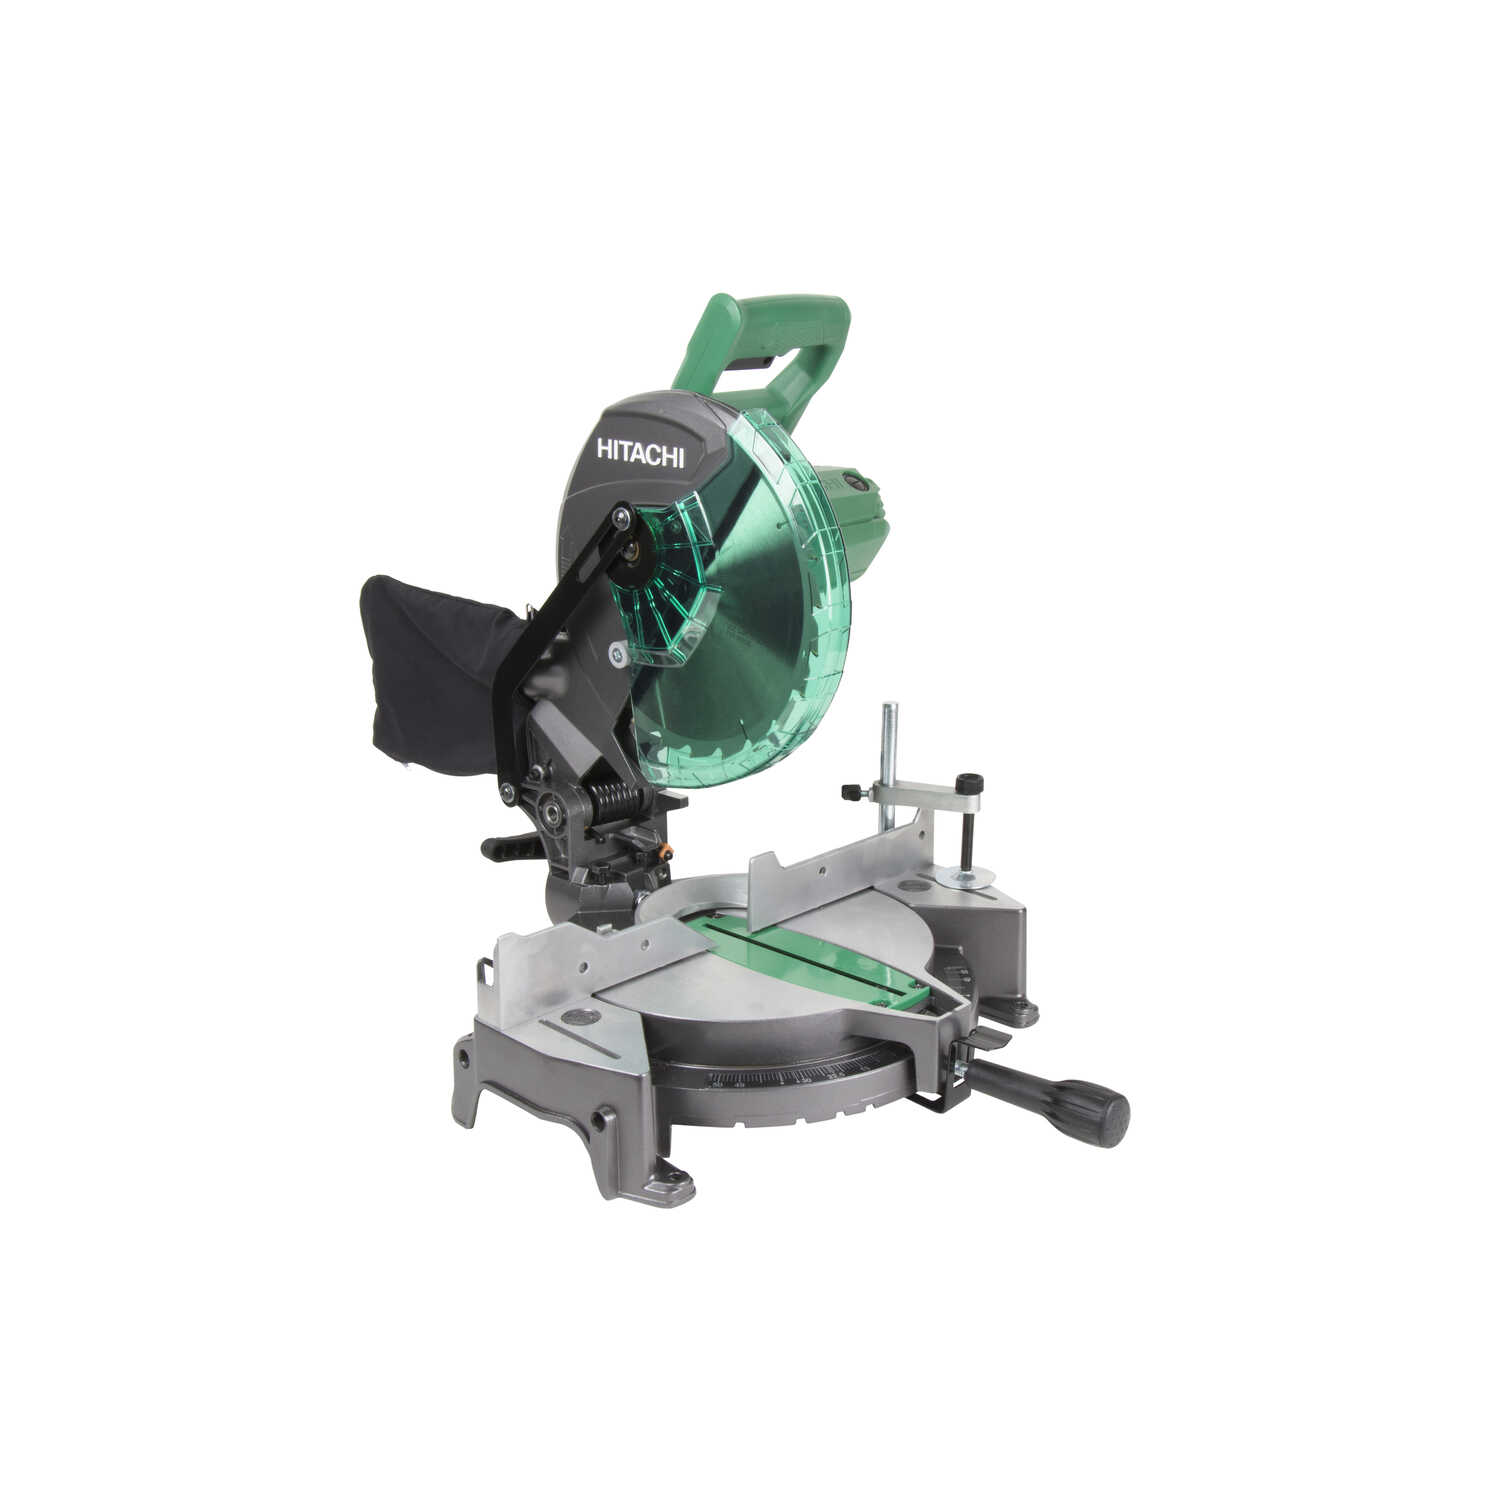 Metabo HPT  10 in. Corded  Compound Miter Saw  120 volt 15 amps 5000 rpm